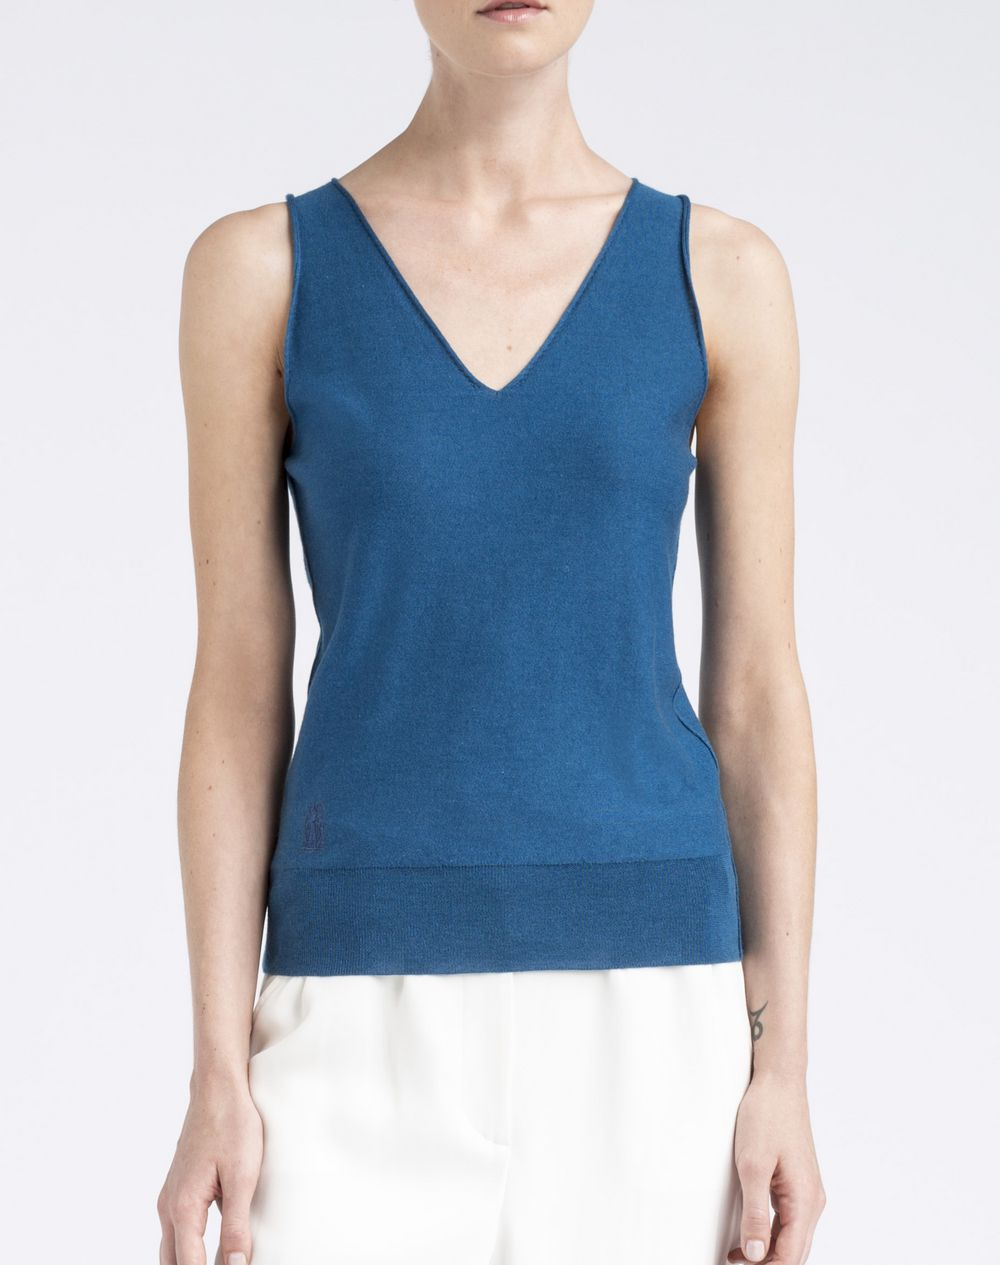 Lanvin ‎Sleeveless Top With Lanvin 125 Ans Logo ‎, ‎Top ...